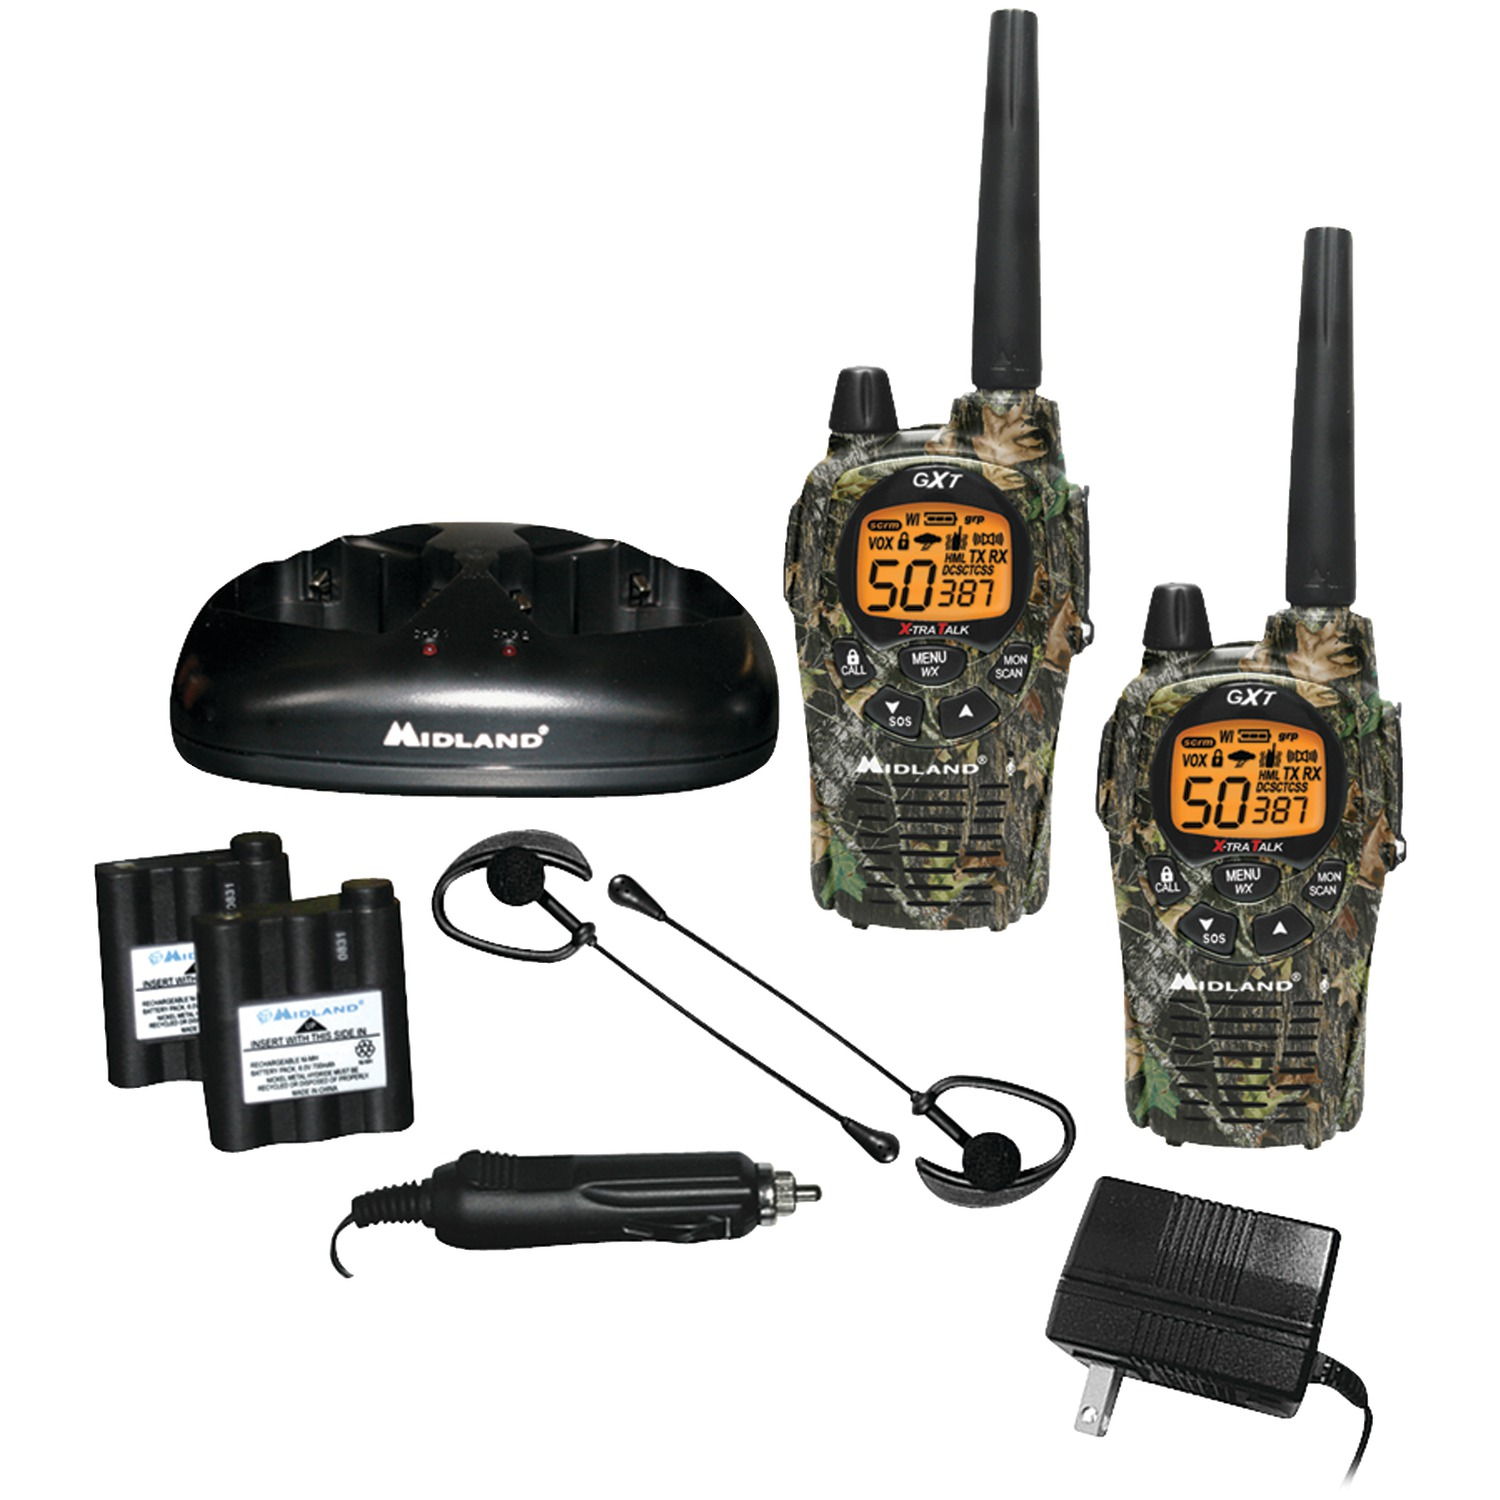 Midland GXT1050VP4 36-Mile Camo GMRS Radio 4 Pack With Batteries & Drop-in Charger by Midland